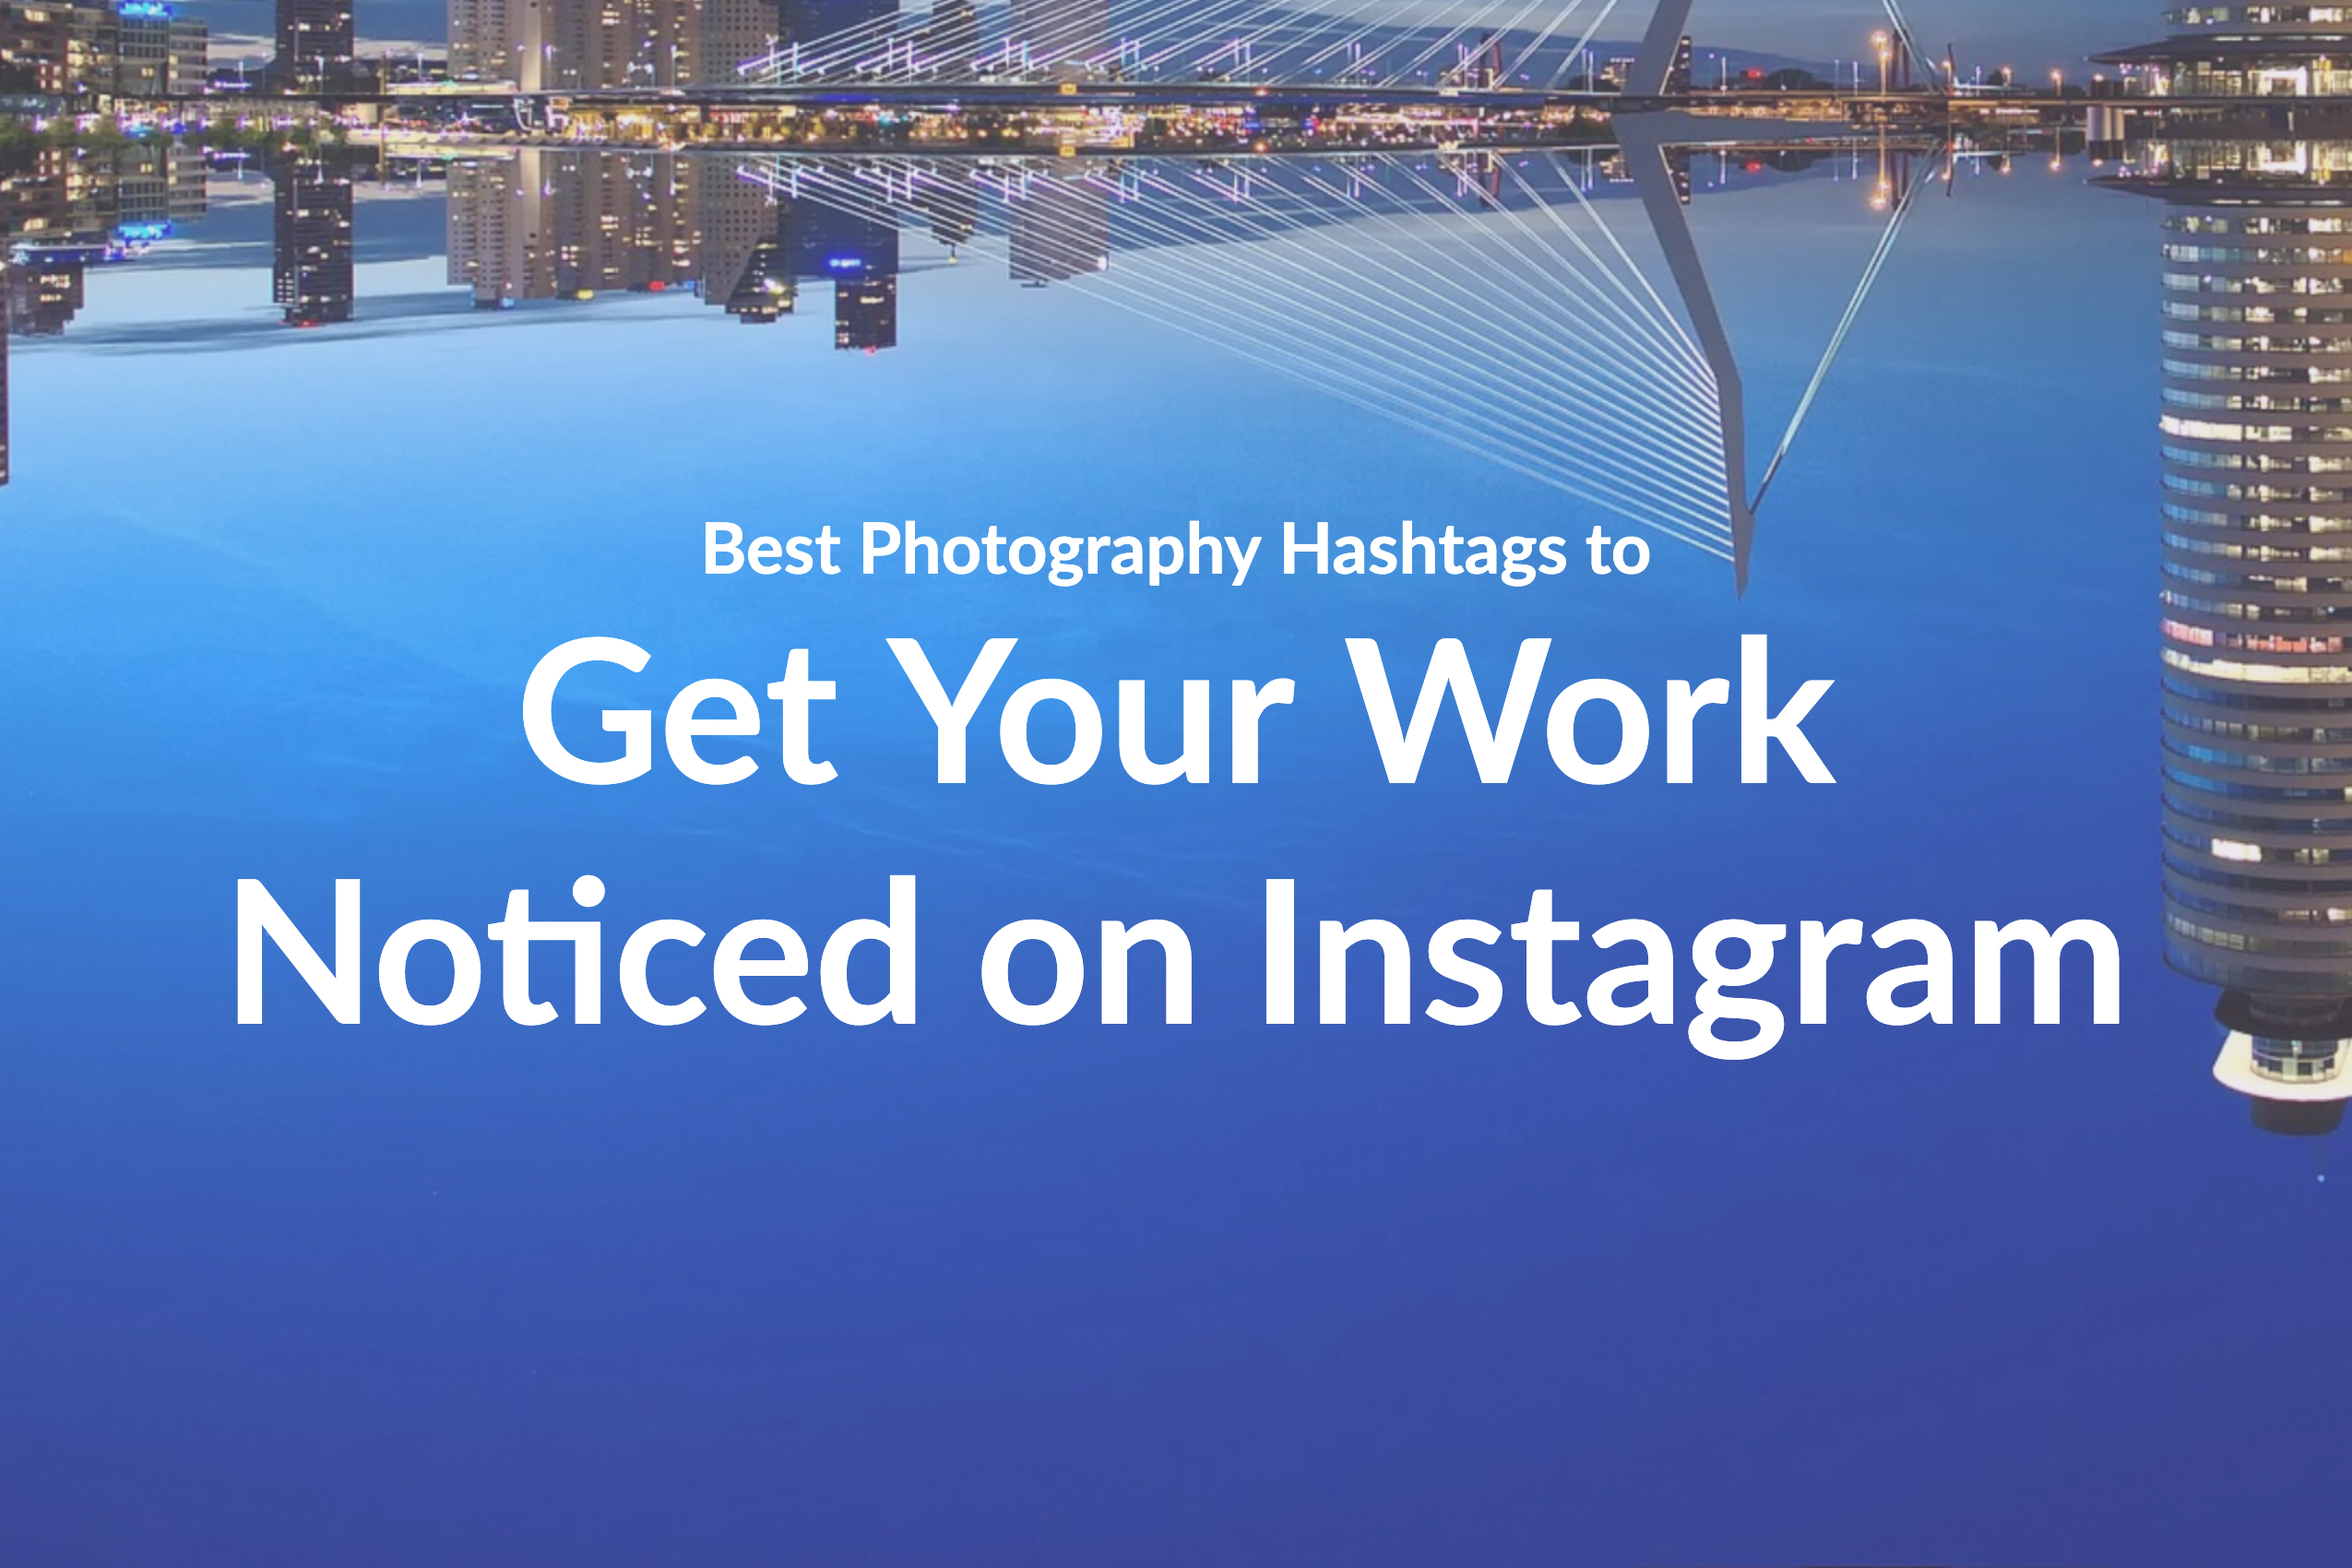 Best Photography Hashtags To Get Your Work Seen On Instagram